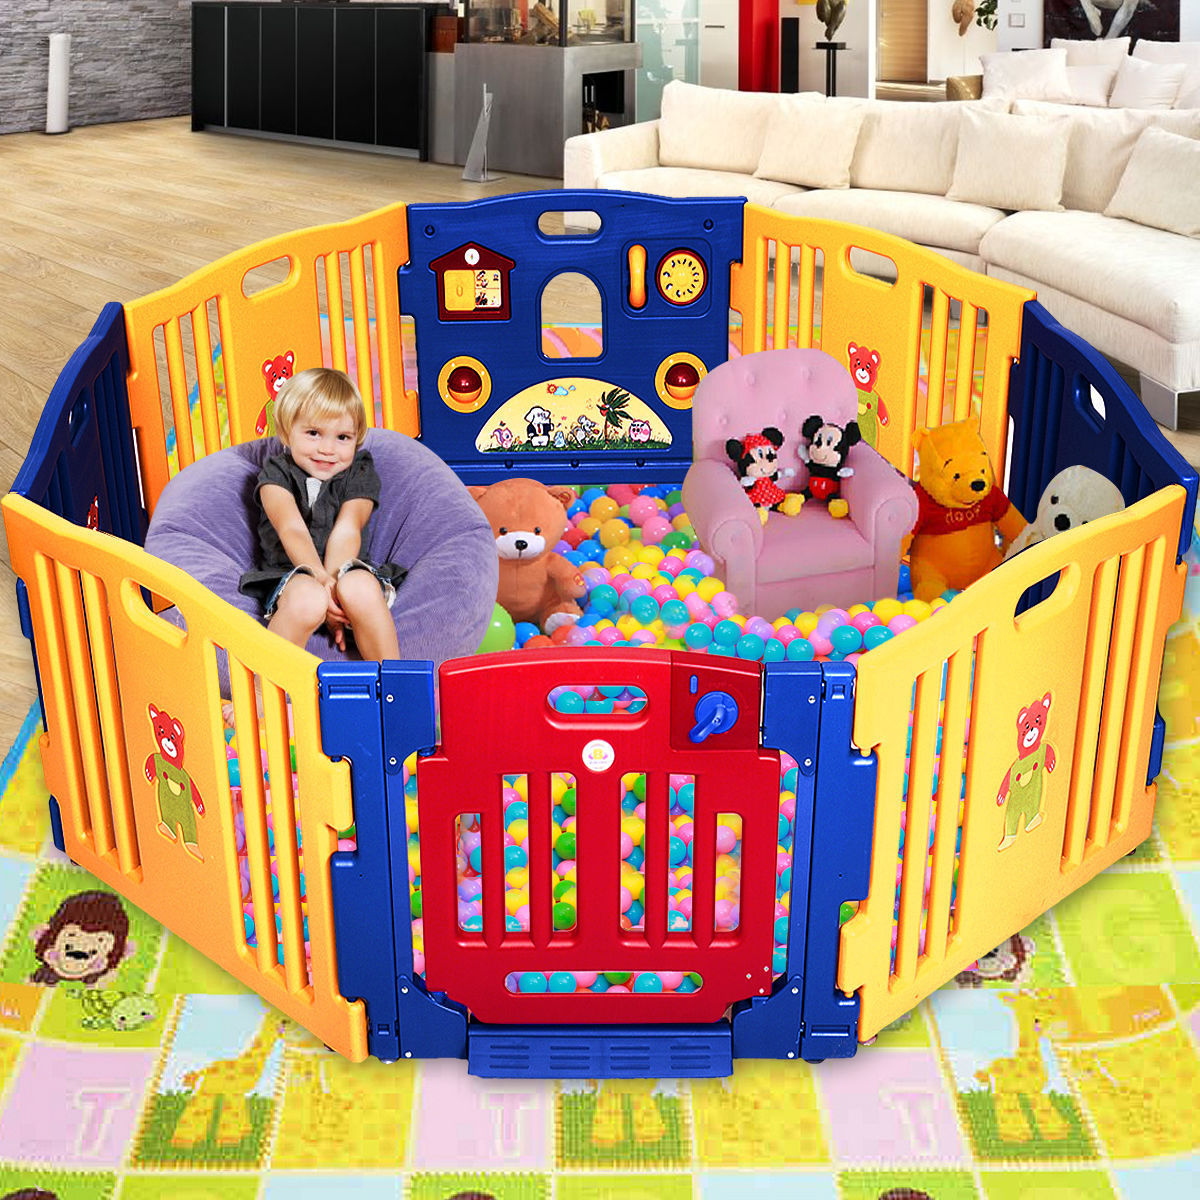 8 Panel Large Foldable Baby Kids Play Pens Playpen Room Divider Educational  Toys   Play Yards   Baby Toys U0026 Activity Equipment   Baby U0026 Toddler